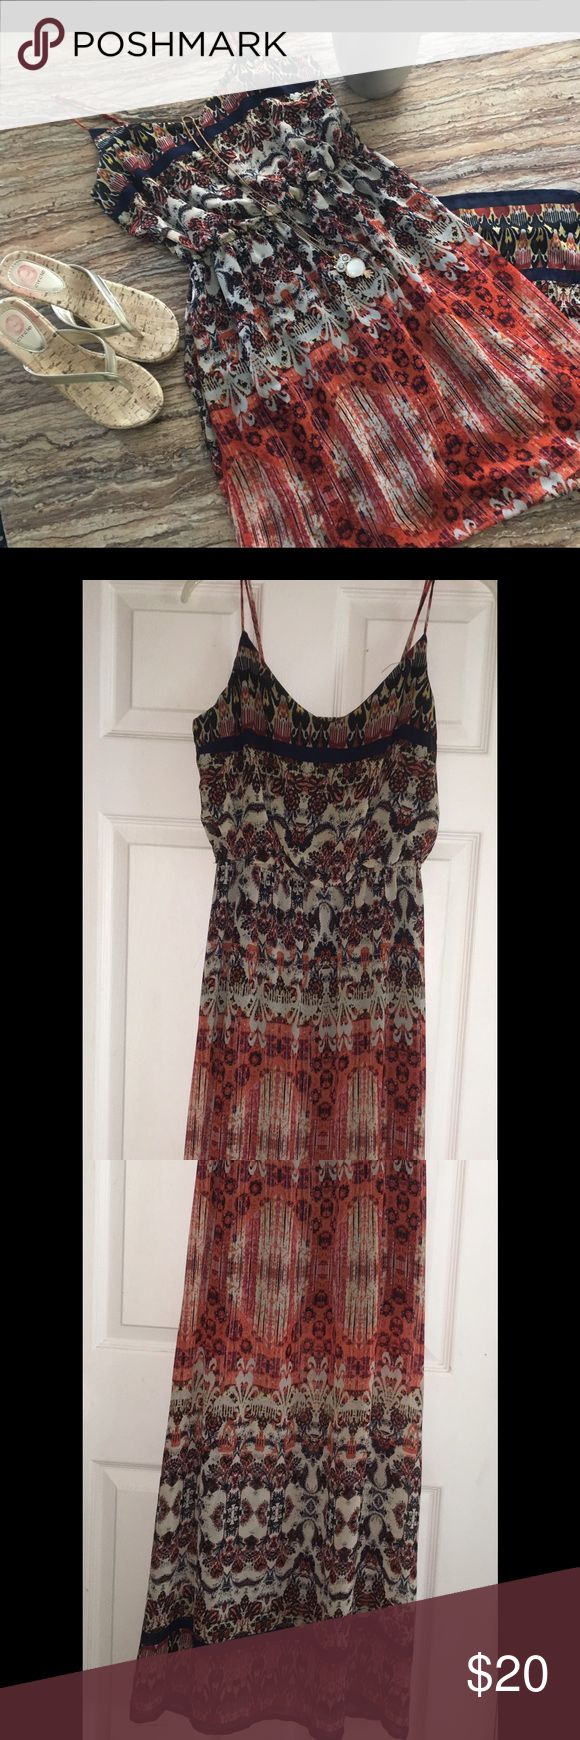 Beautiful Sundress Size Large also fits Clarke This is a beautiful Sundress is a size Large but also would fit a xlarge since it's not fitted. It's not see through, has a slip underneath. Excellent Condition as I only wore once. Maurices Dresses